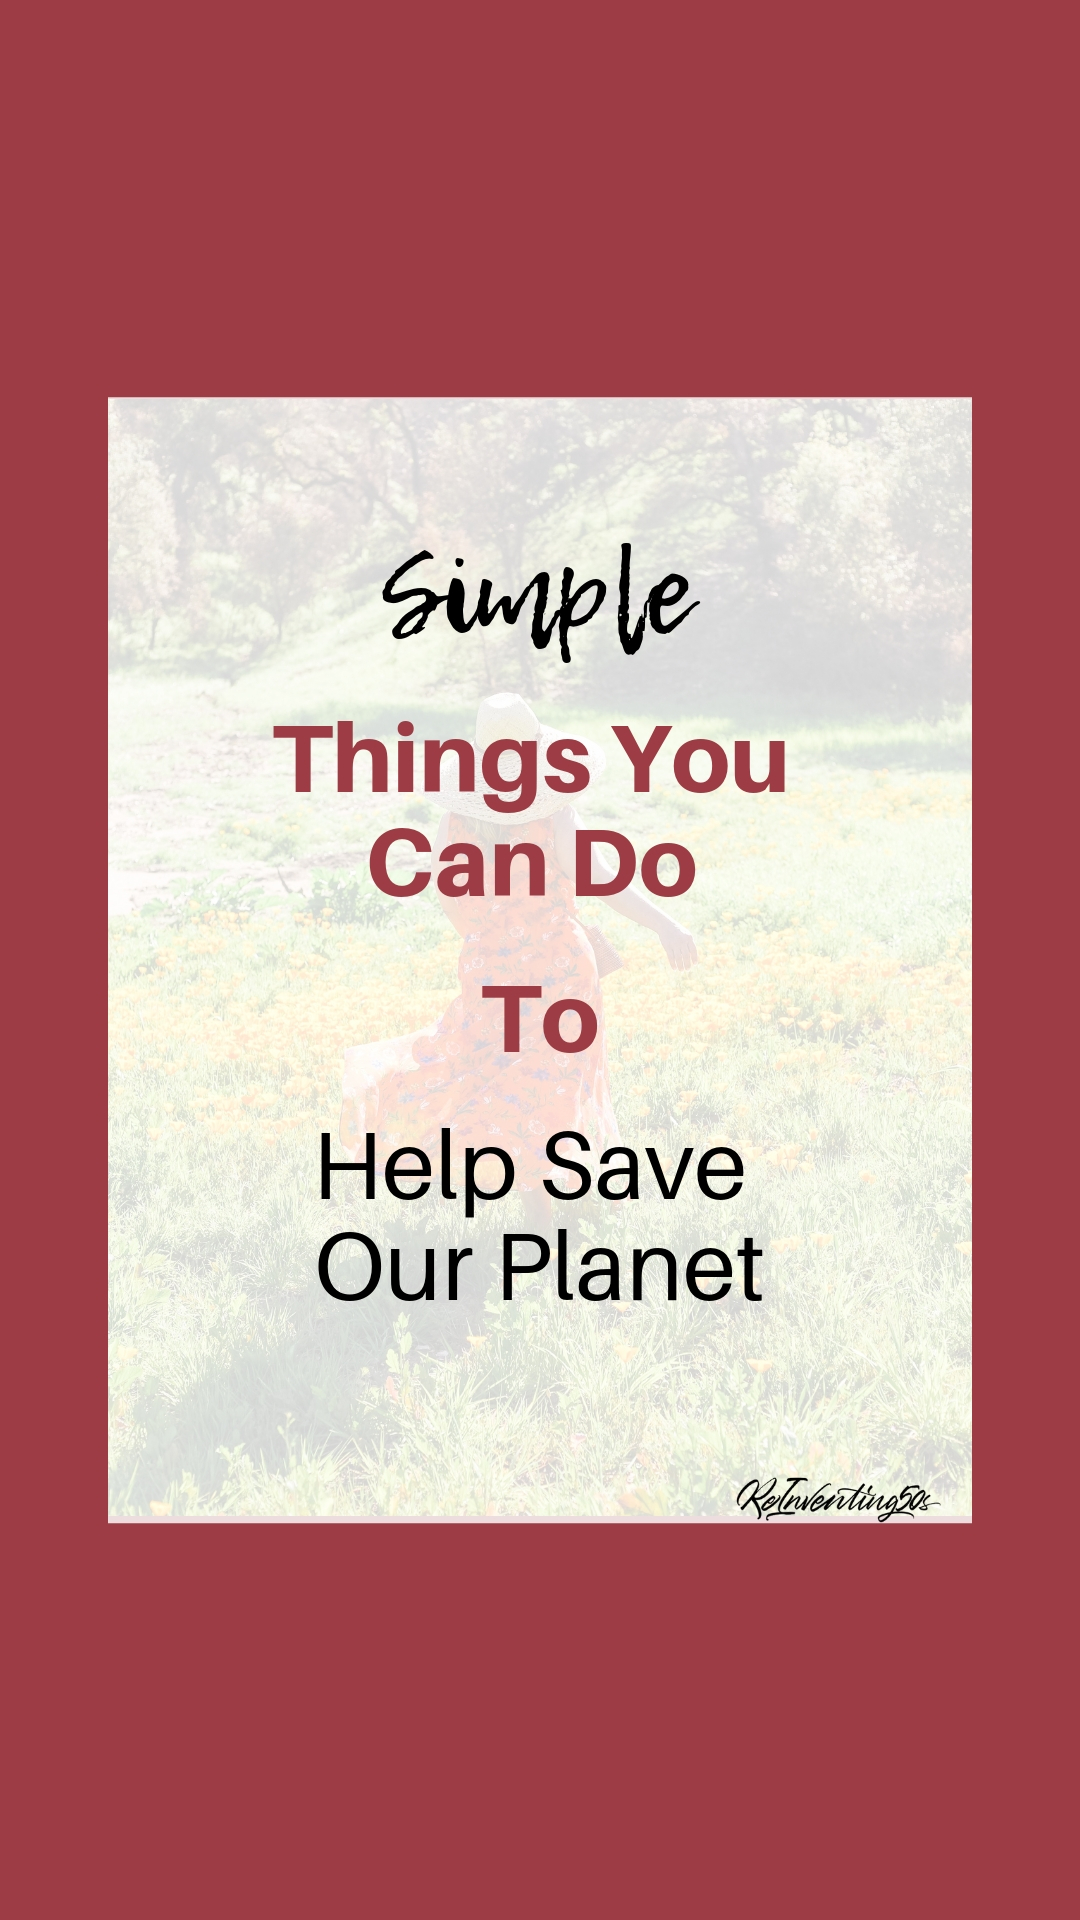 Simple things we can do to save our planet. #earthday #saveourplanet